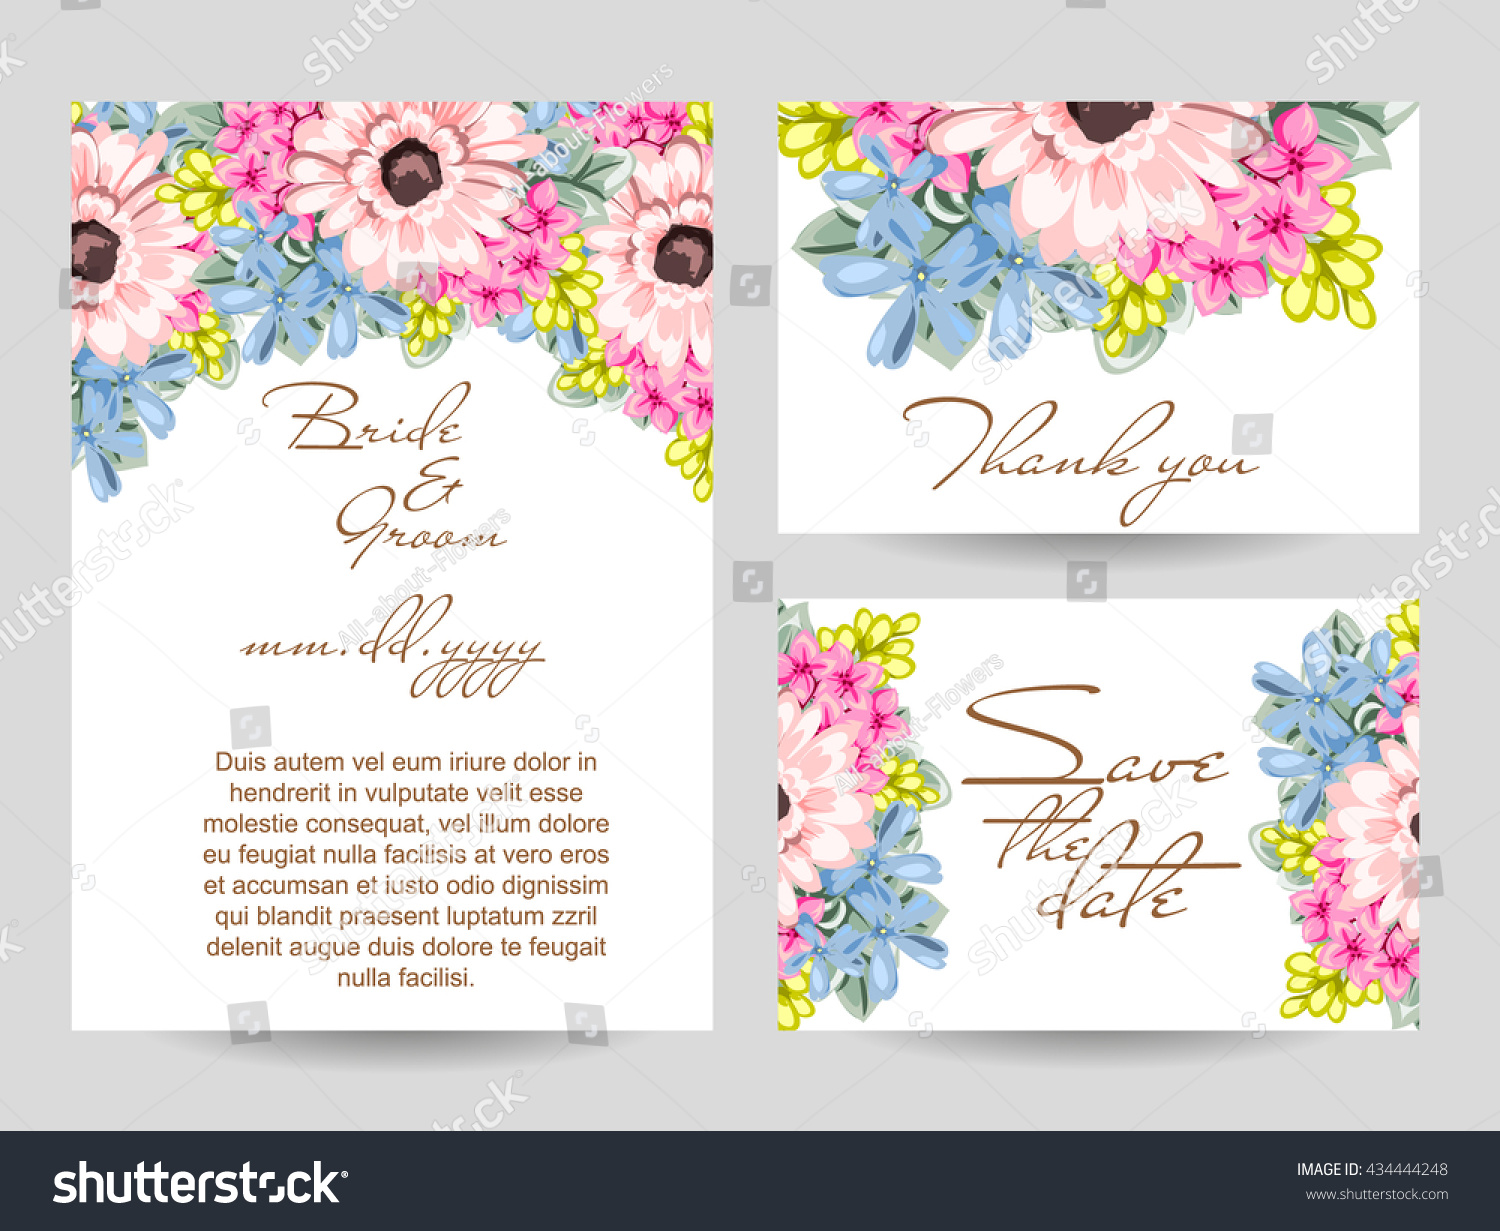 Romantic invitation Wedding marriage bridal birthday Valentine's day